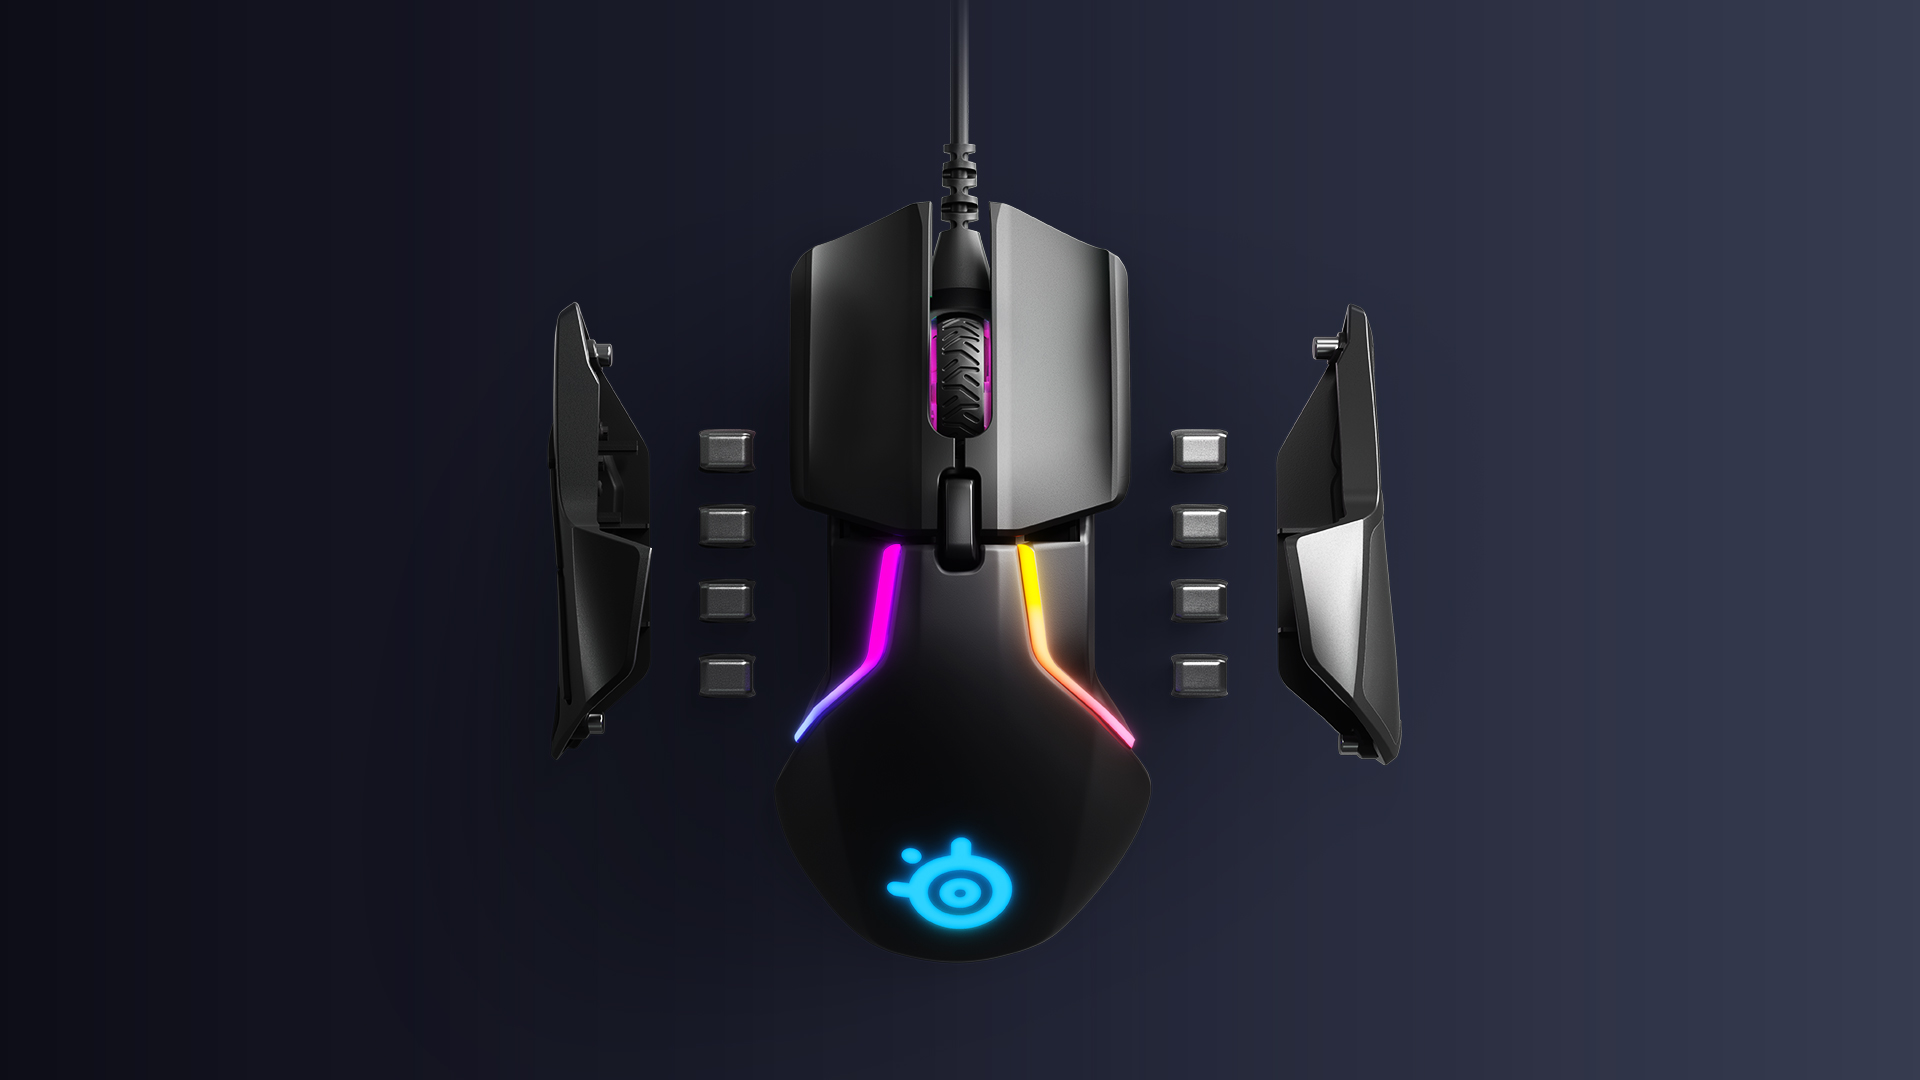 SteelSeries New Rival 600 Gaming Mouse Tracks Your